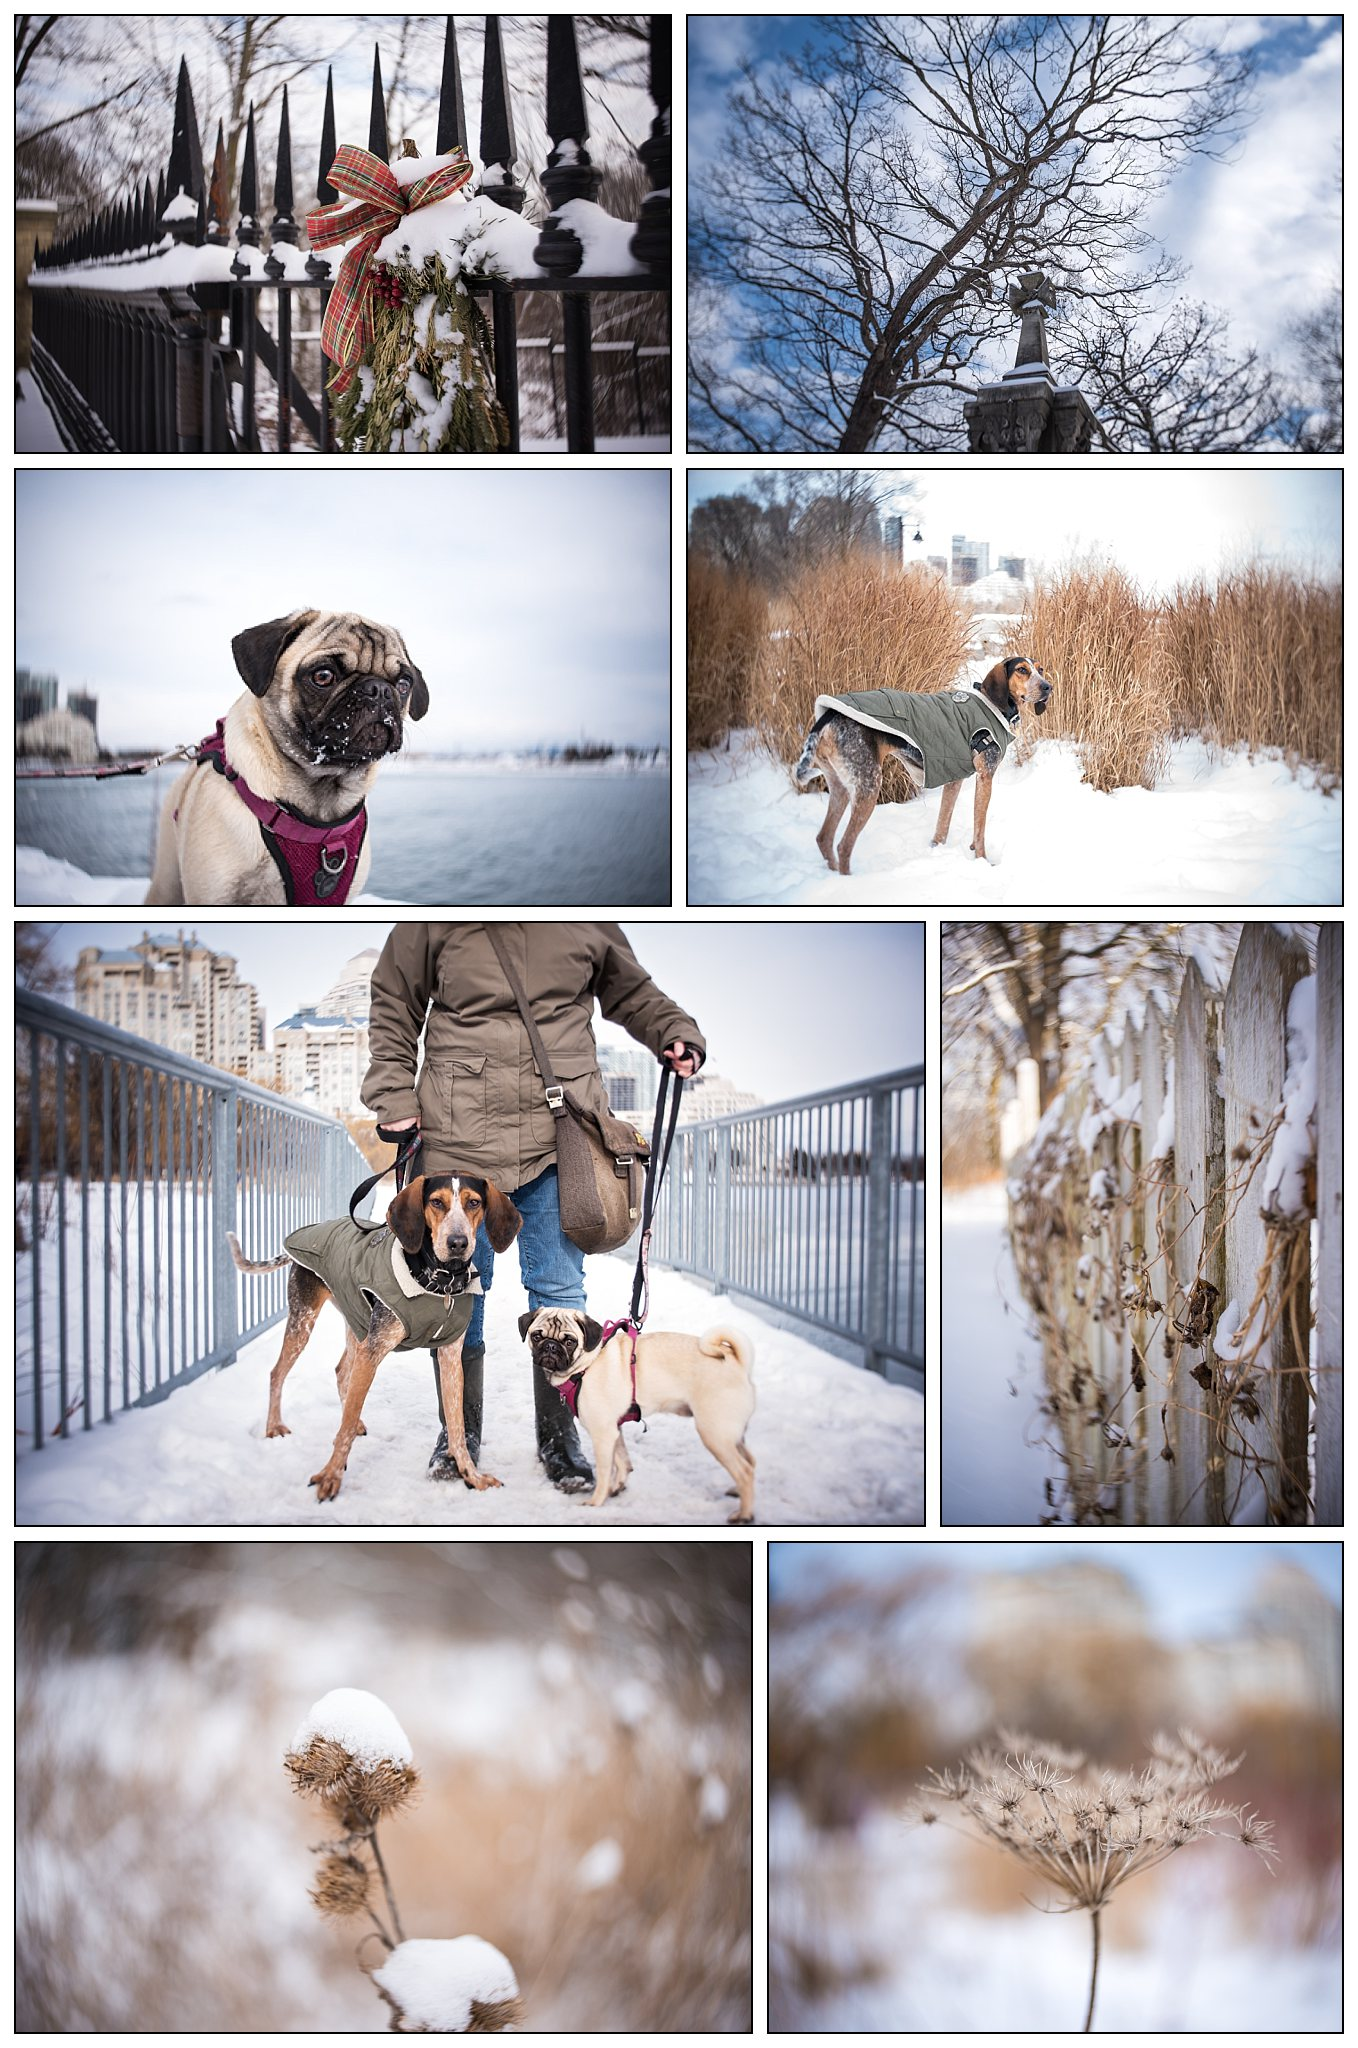 A winter day with Sage, Penny, and the new Lensbaby Burnside 35 mm lens, at Humber Bay Park West, Toronto.